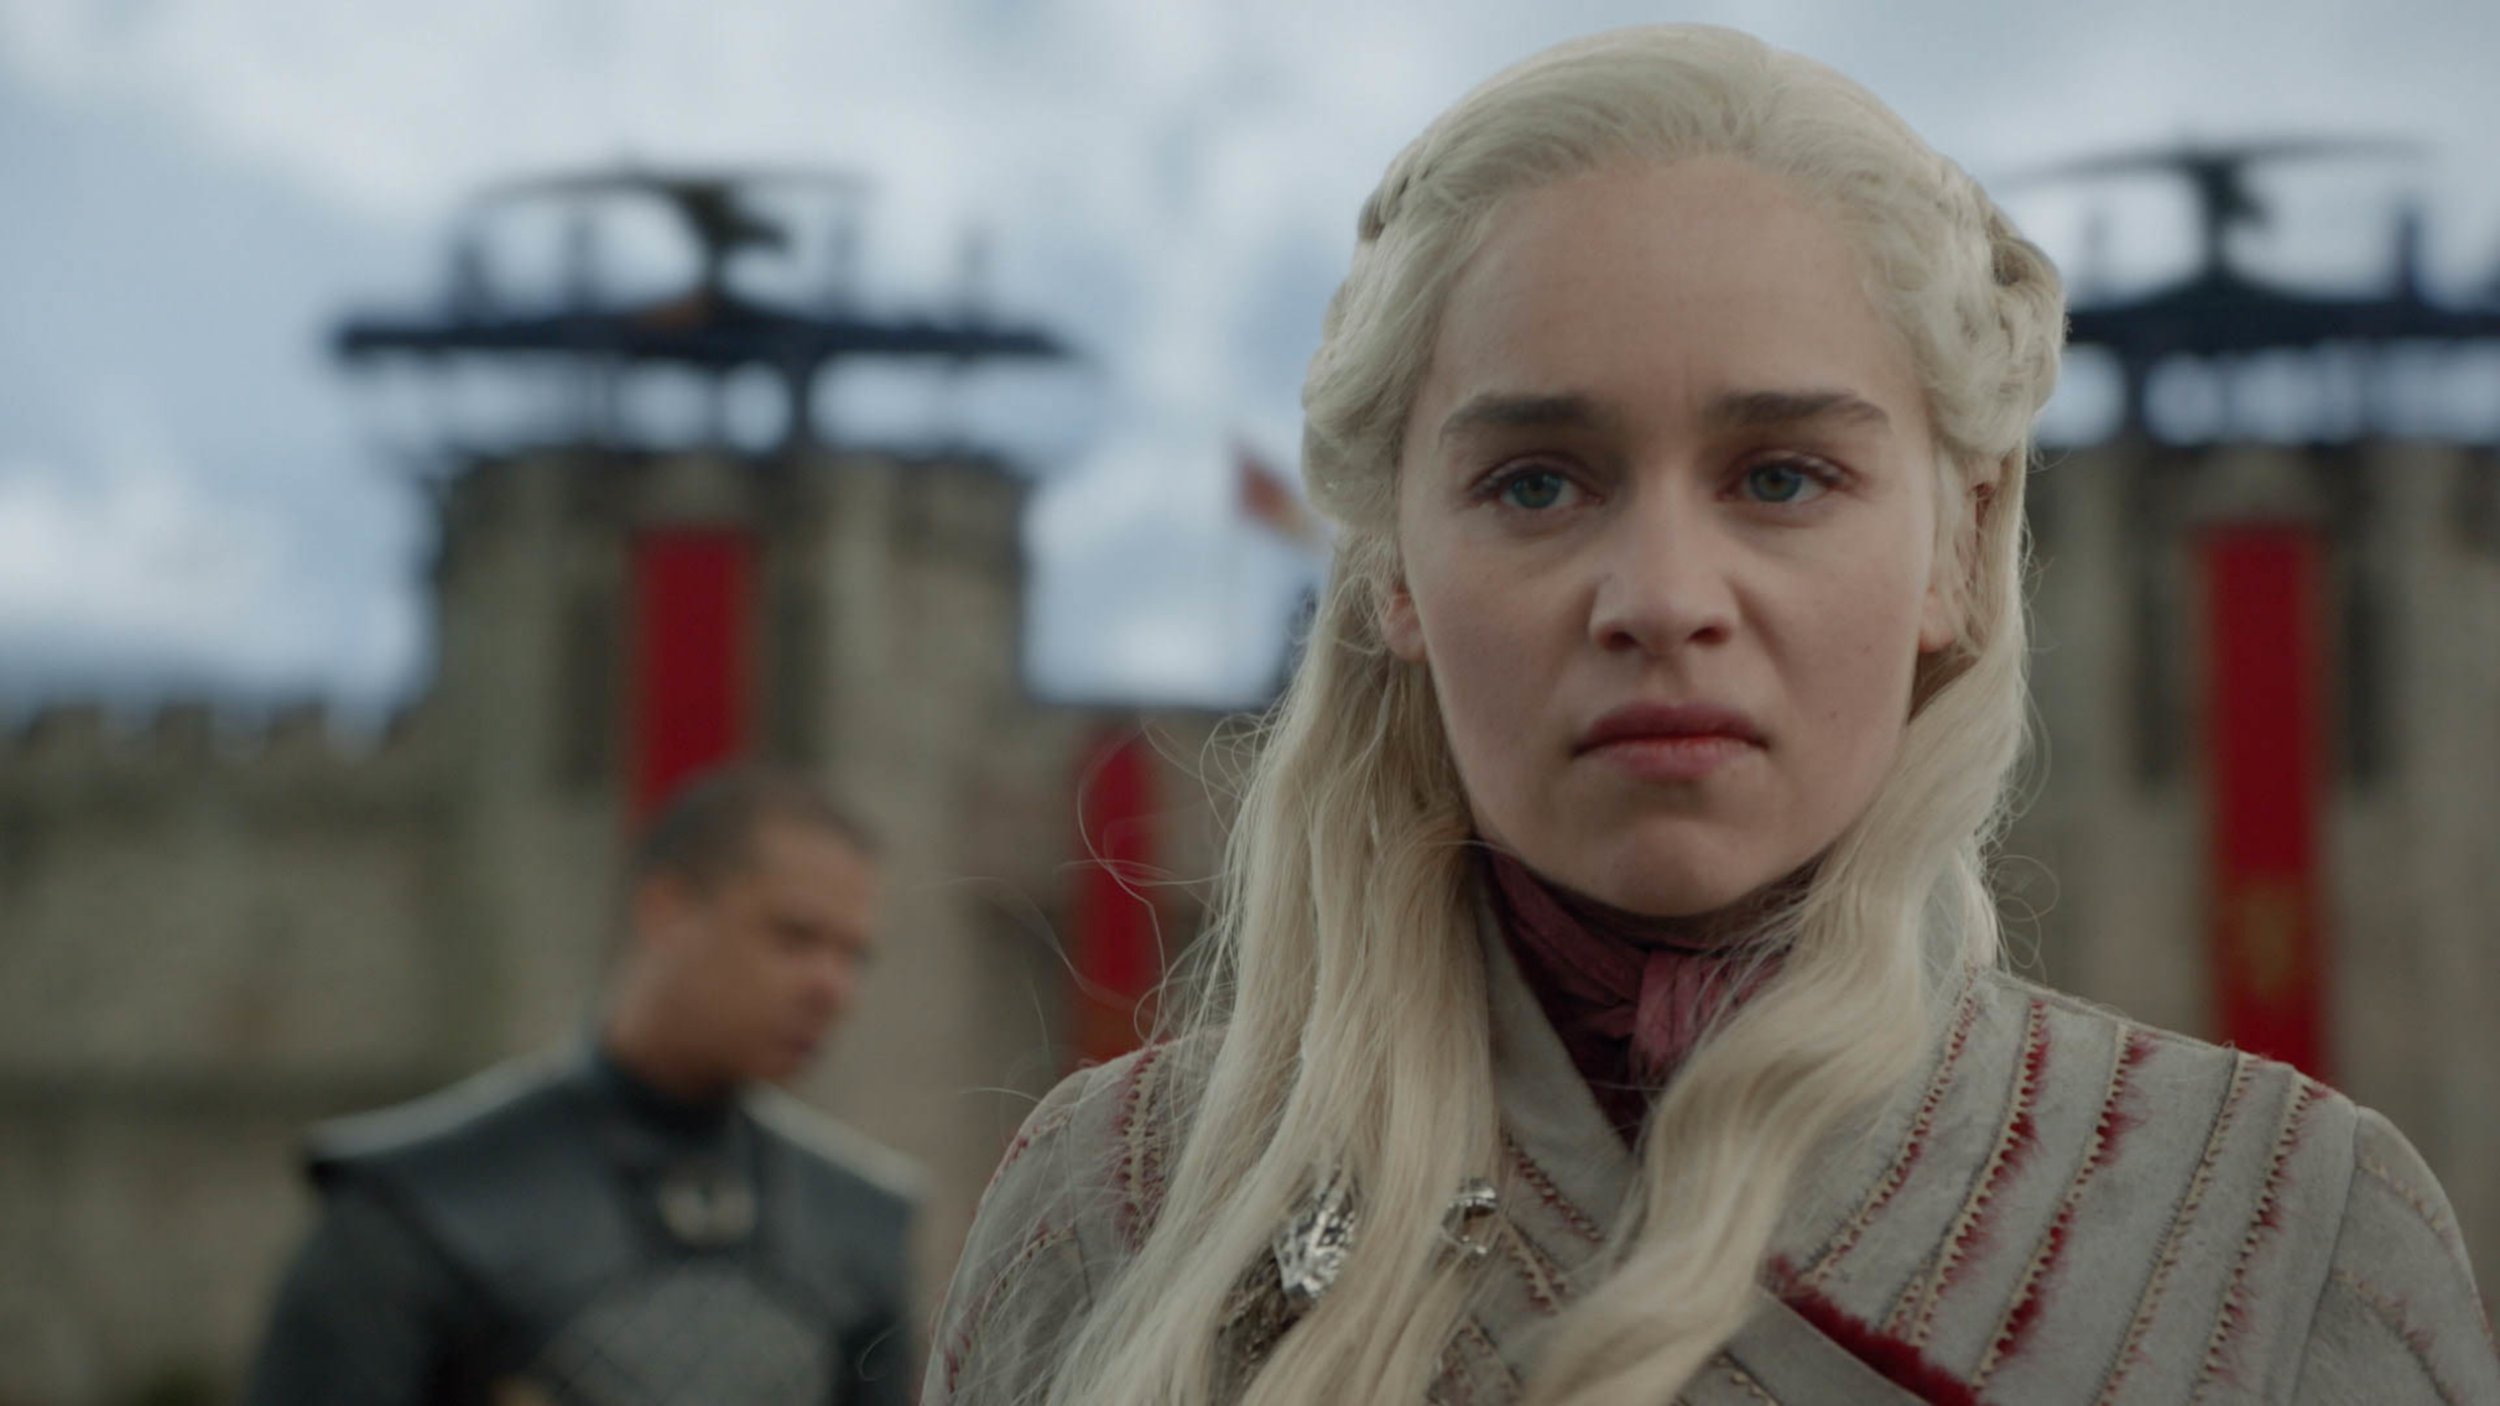 A Game of Thrones fan correctly predicted Daenerys' fate seven years ago